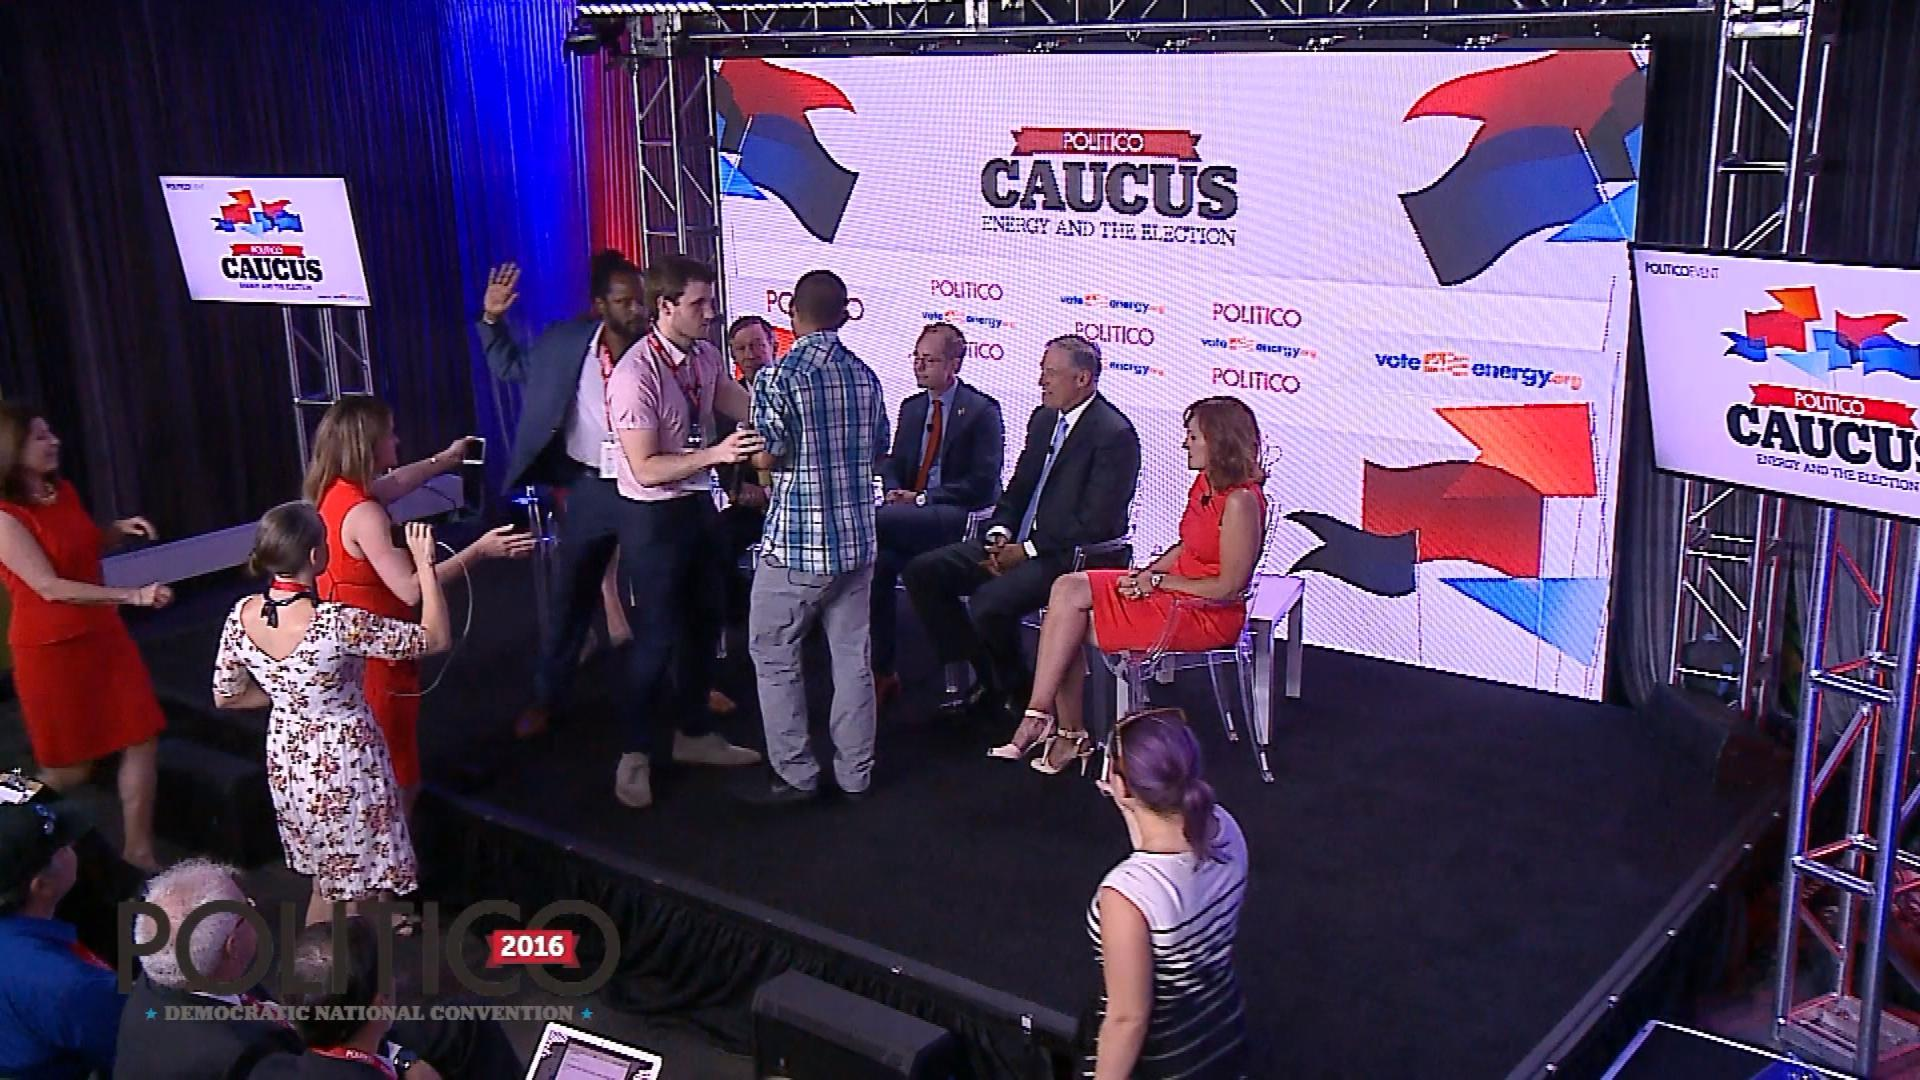 A protester confronting Gov. John Hickenlooper is escorted off the stage (credit: CBS)